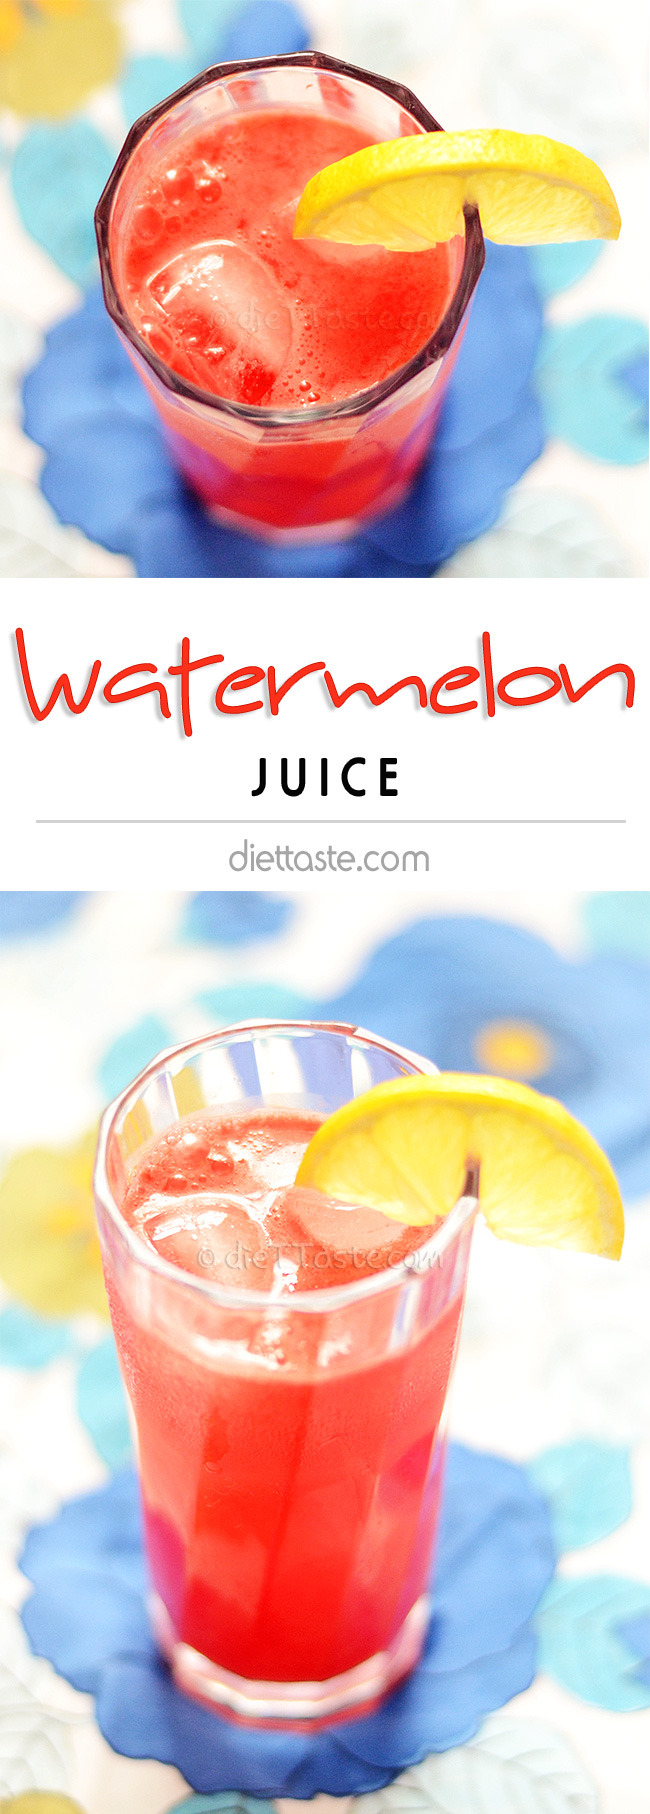 Watermelon Juice - diettaste.com